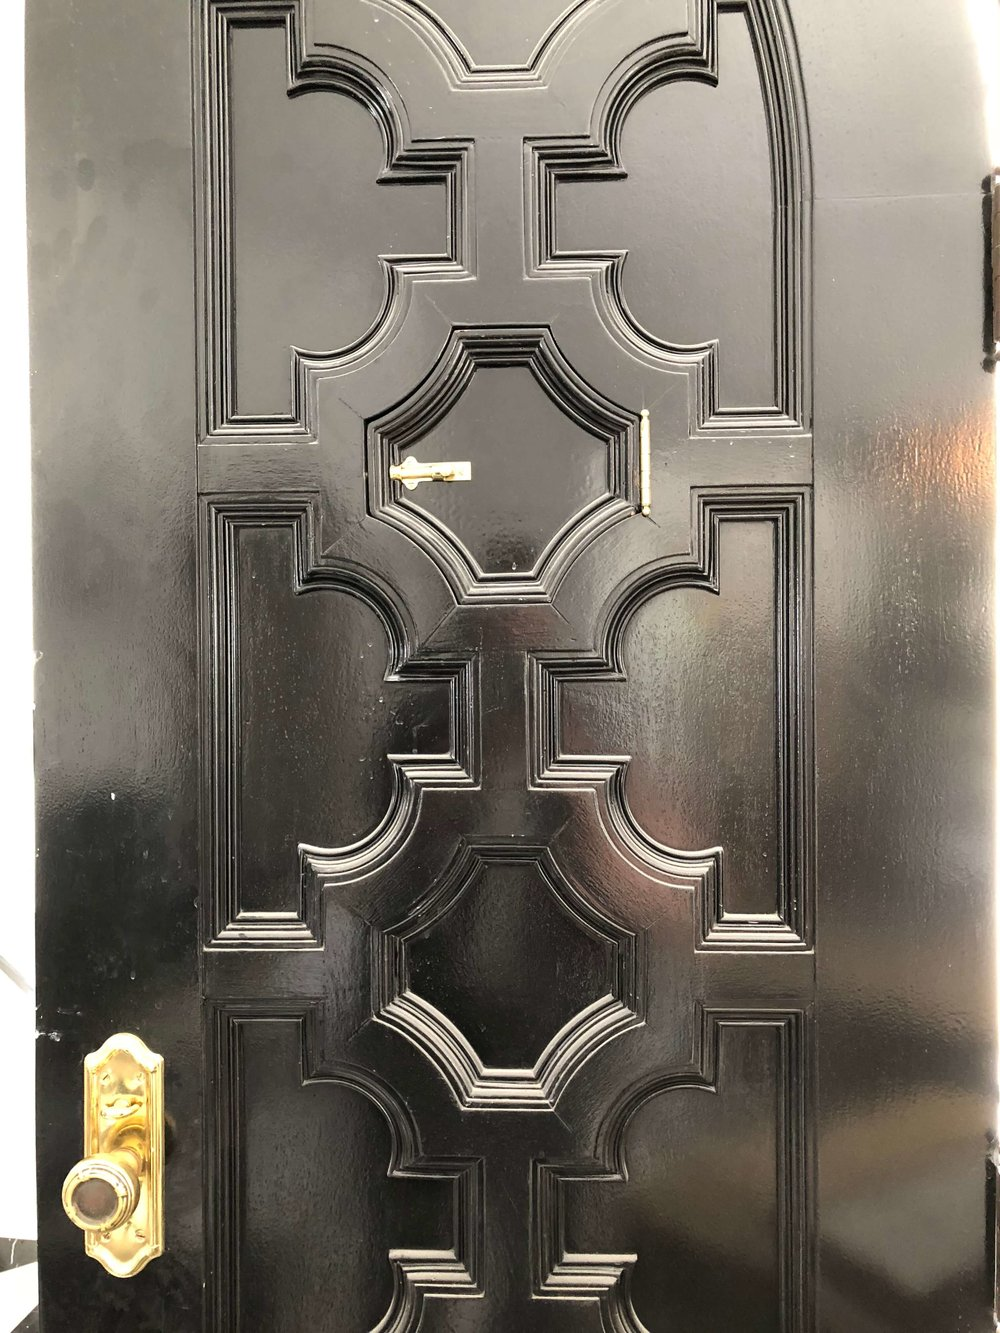 Front door was painted high gloss black with polished brass door hardware. Check out the cool speakeasy door. #blackdoor #frontdoor #brass #speakeasydoor